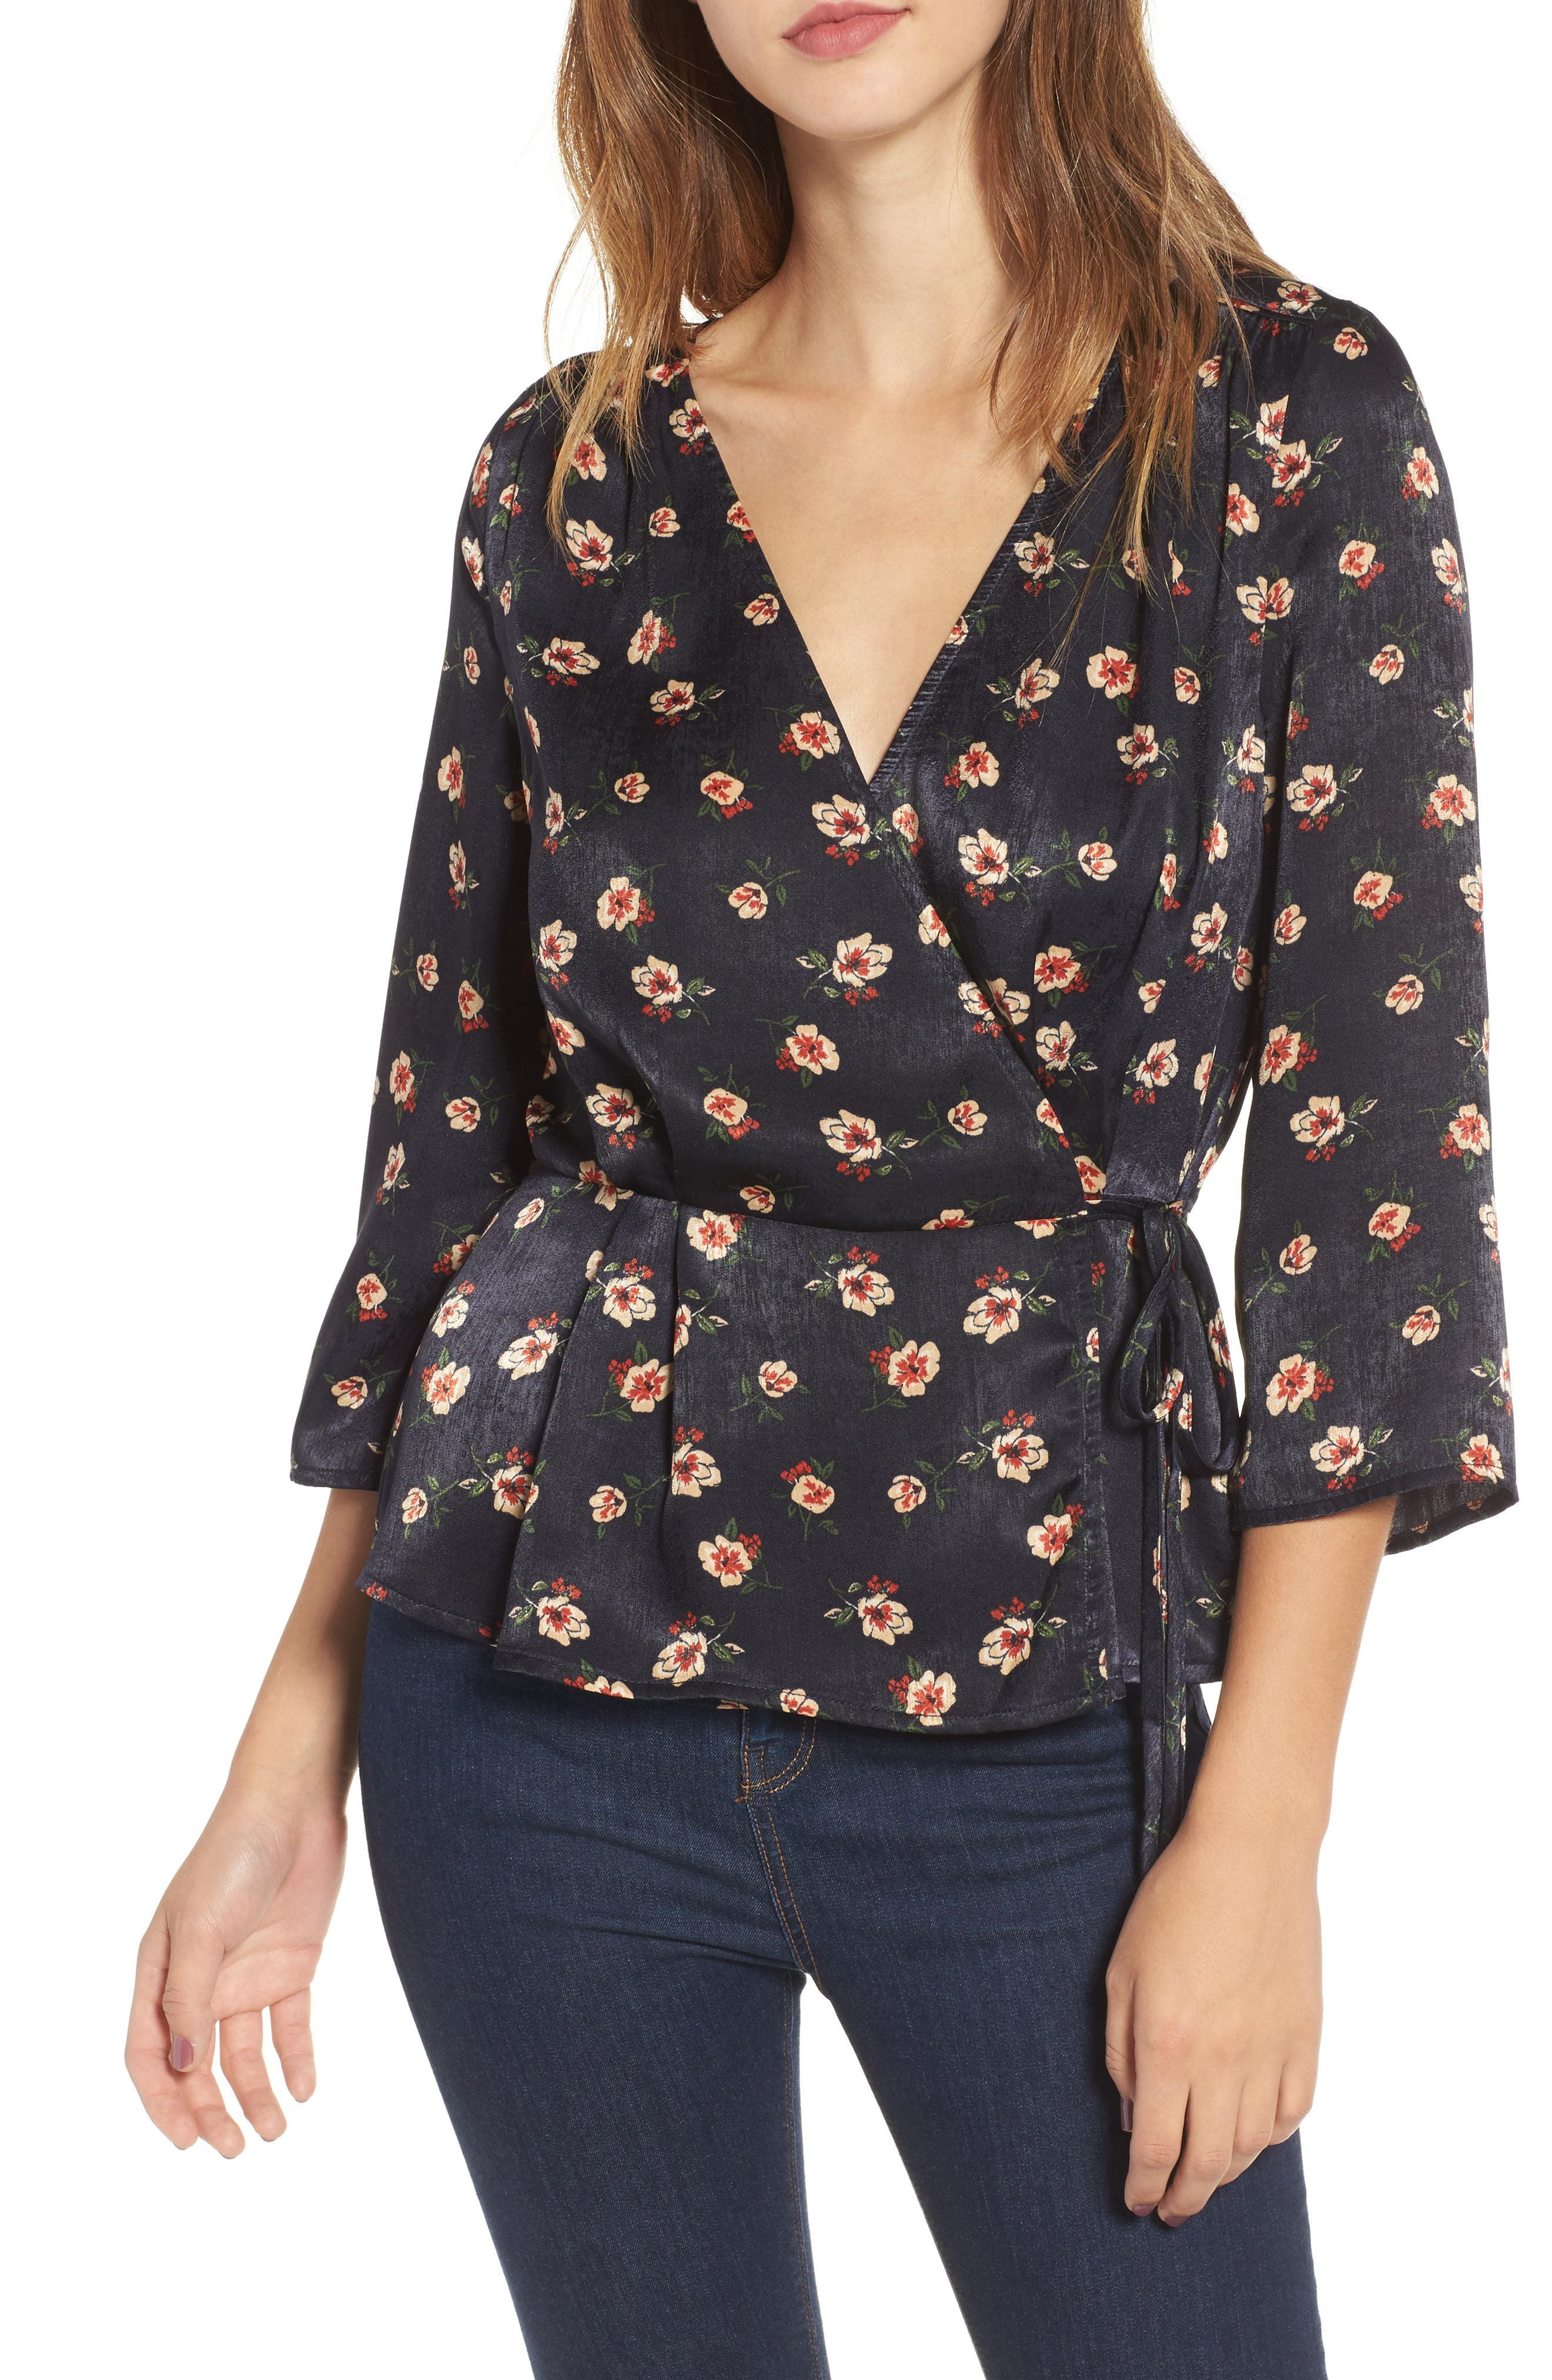 Alternate Image 1 Selected - J.O.A. Floral Wrap Top